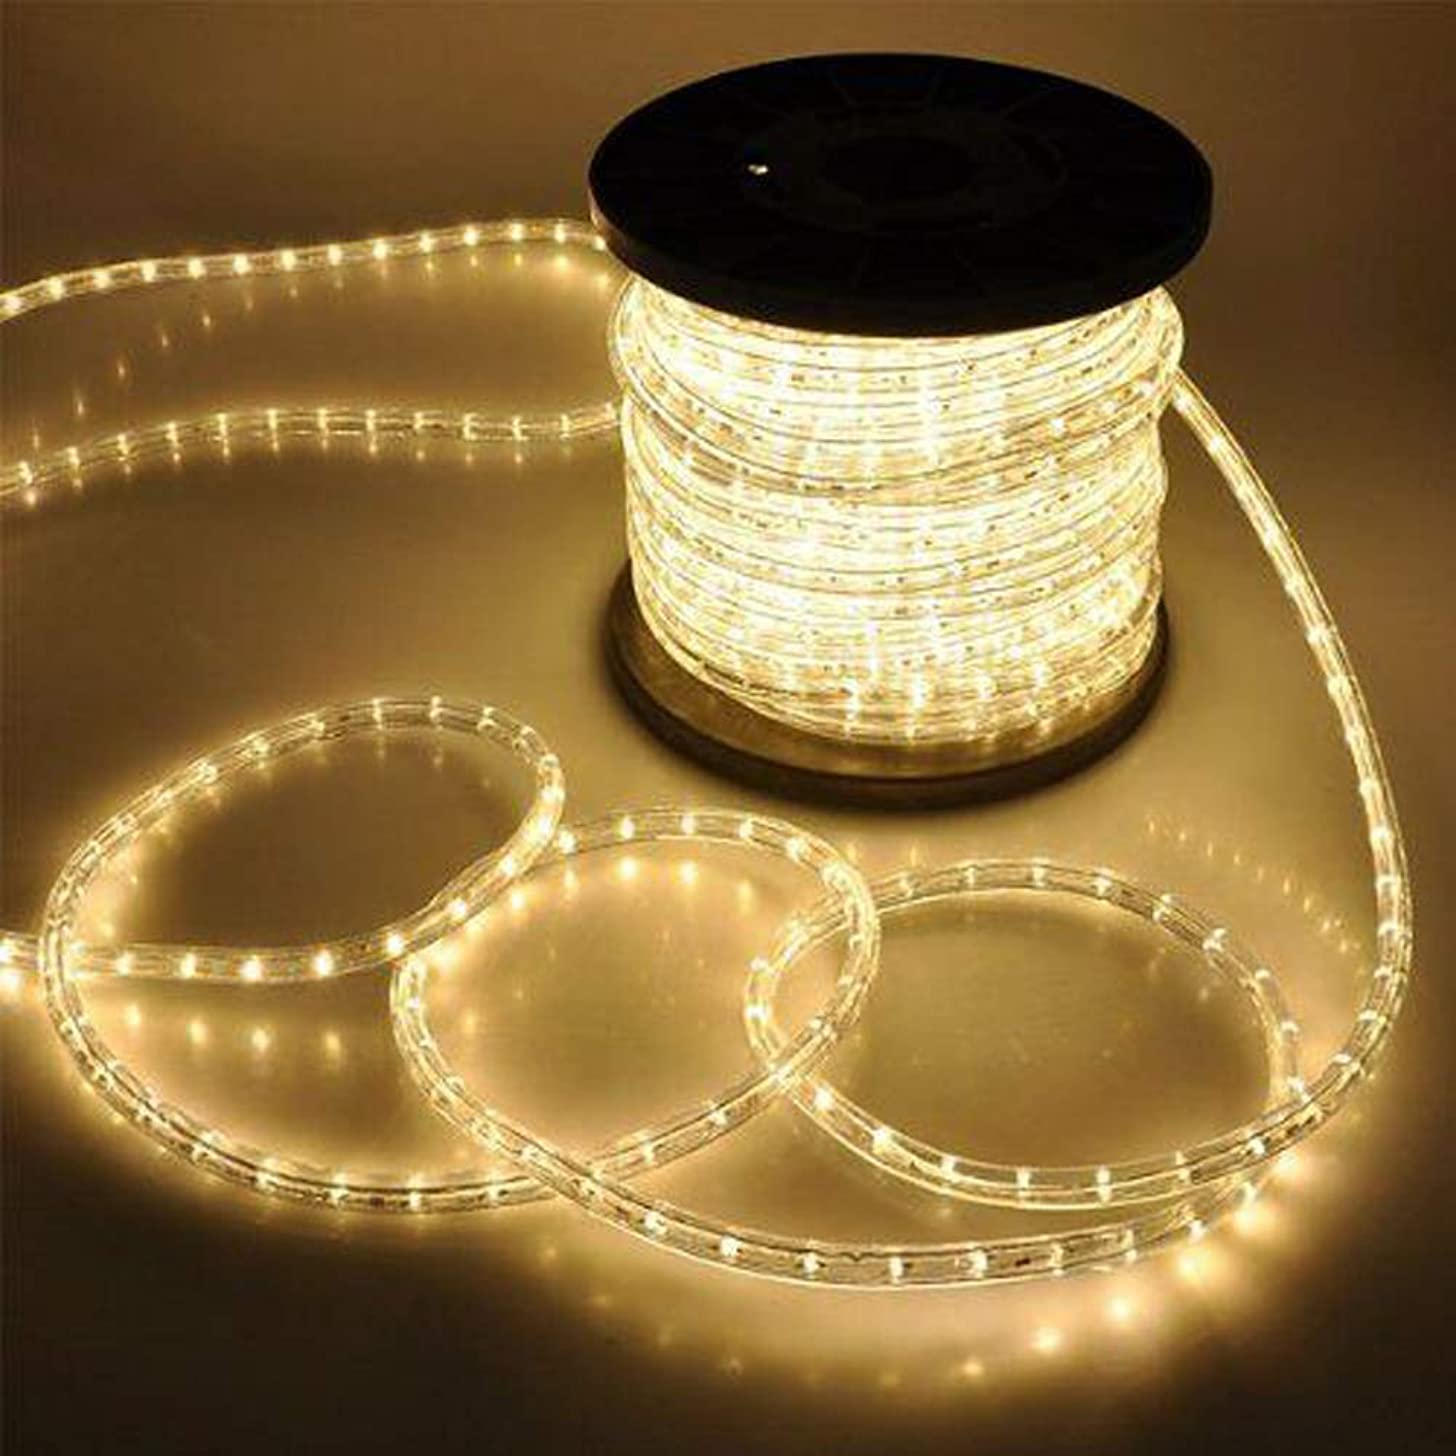 Pataku Warm White LED Rope Lights,150 ft/45 M,Low Voltage, Waterproof, Connectable Clear Tube Indoor Outdoor Light Rope and String for Deck, Patio, Pool, Bedroom, Boat, Landscape Lighting